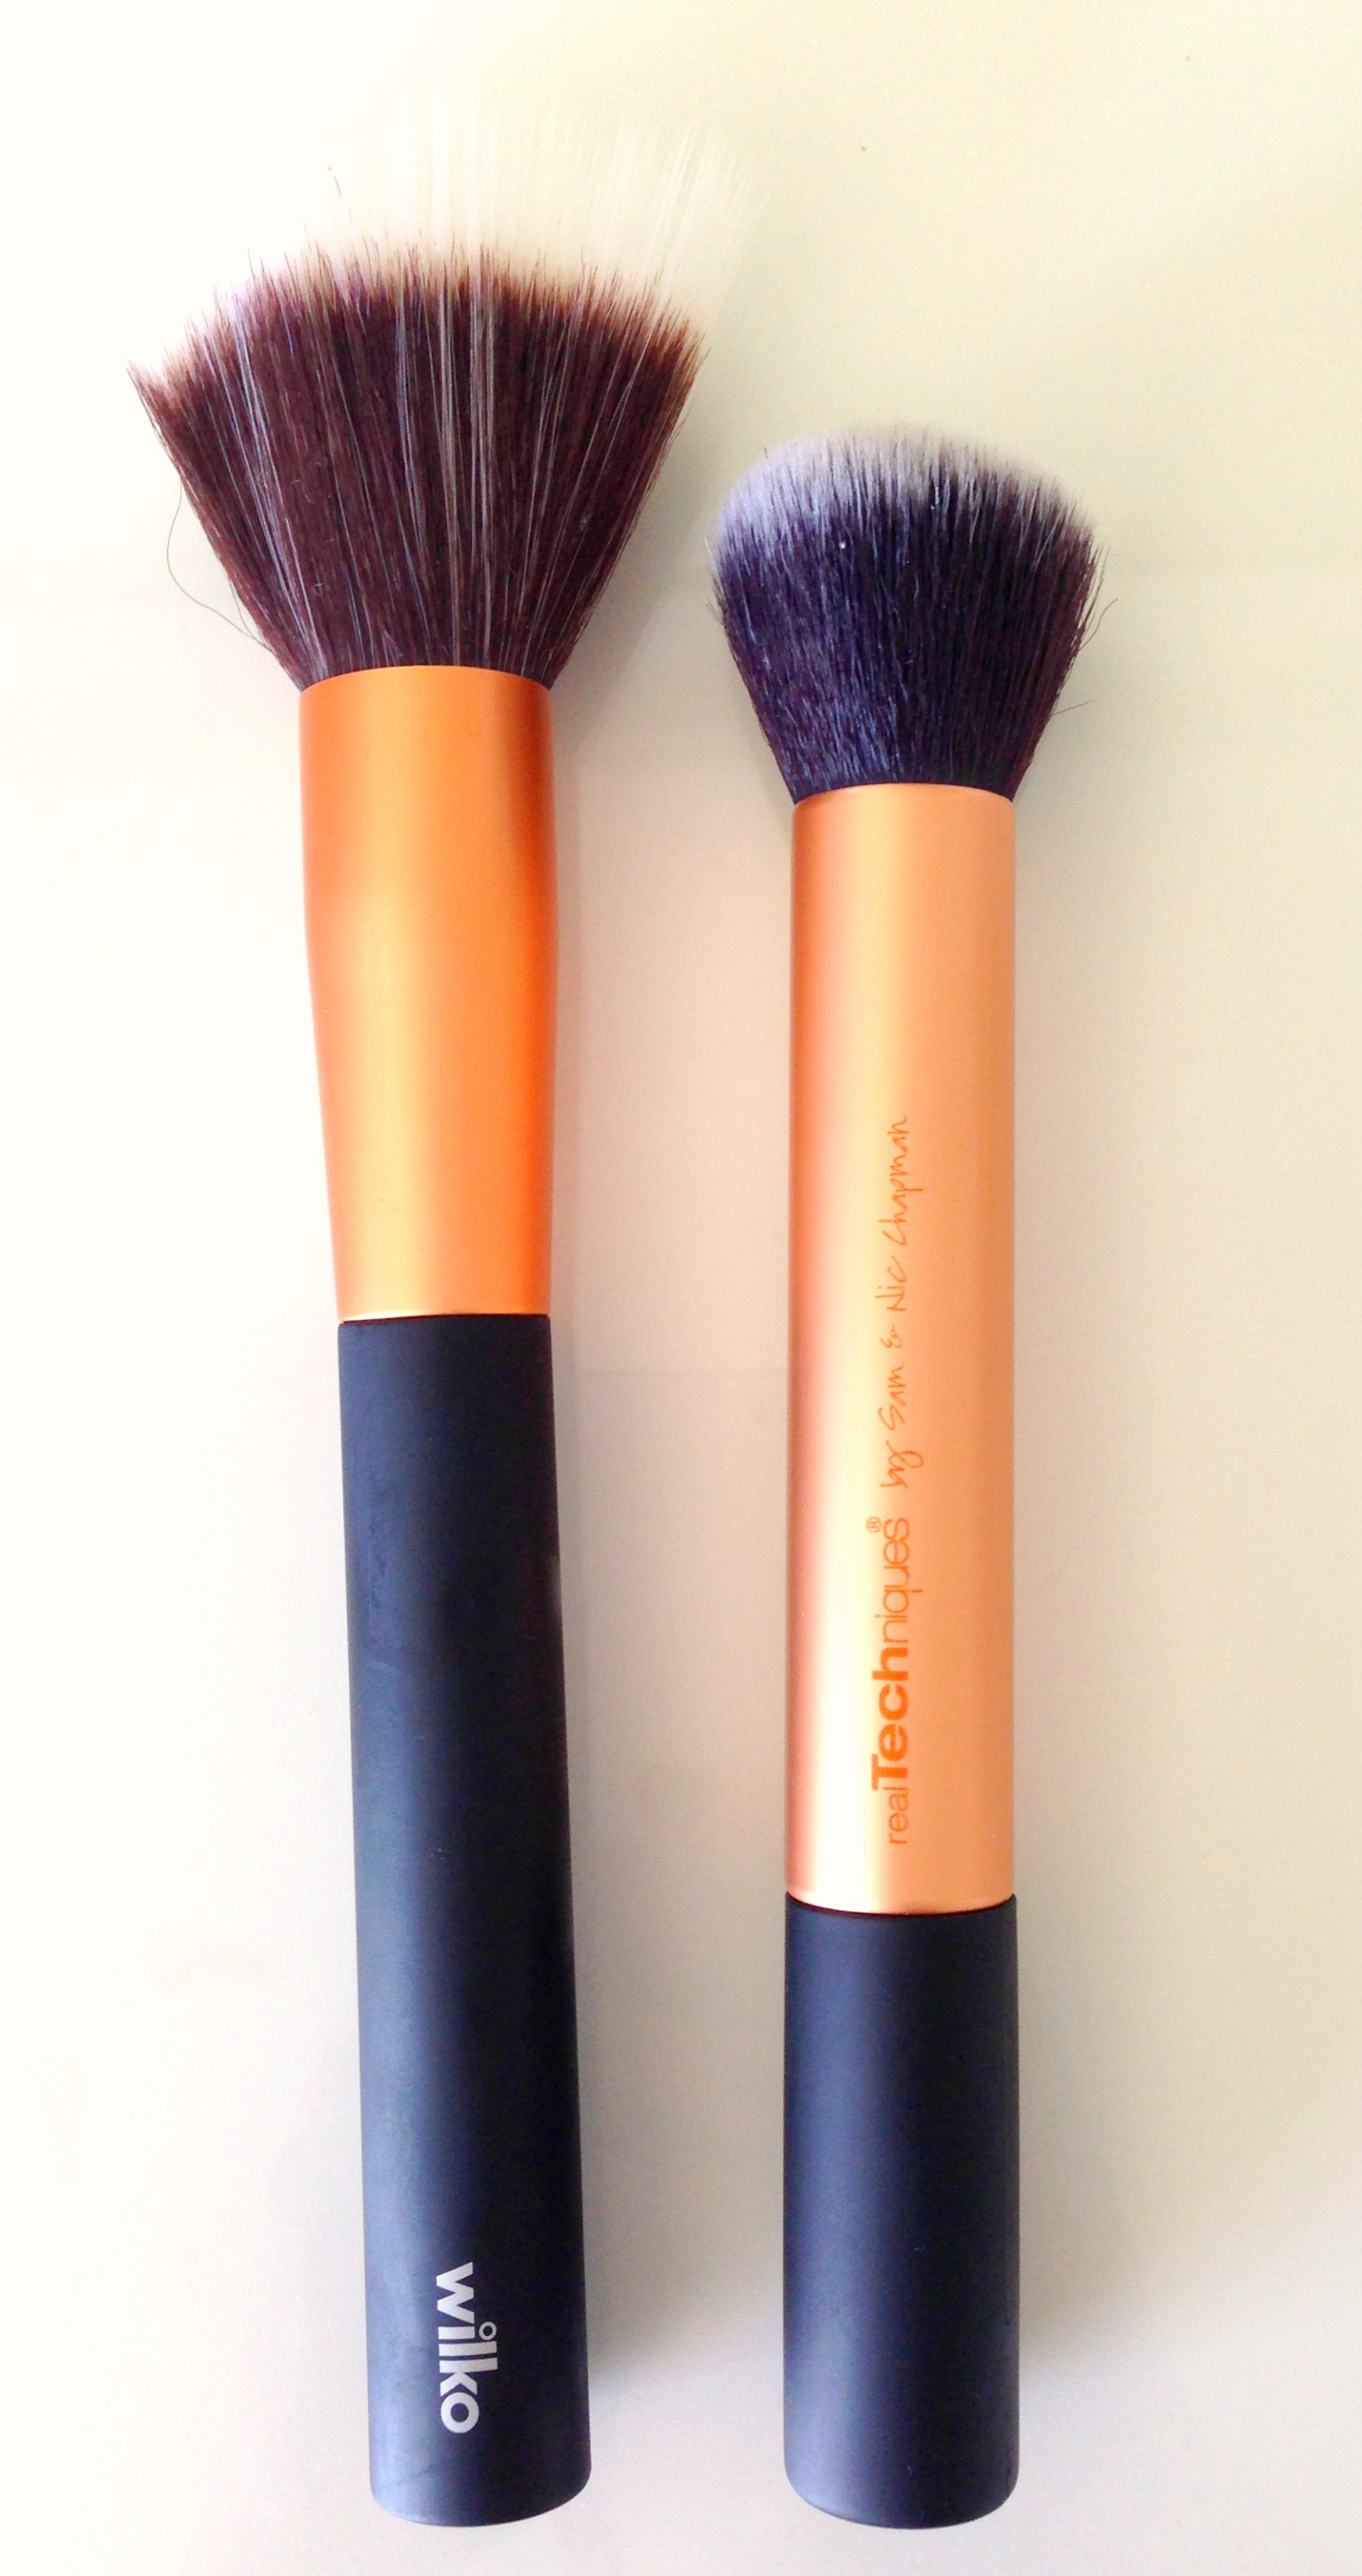 Makeup Brushes And What They Are Used For: Wilko Premium Makeup Brush Collection